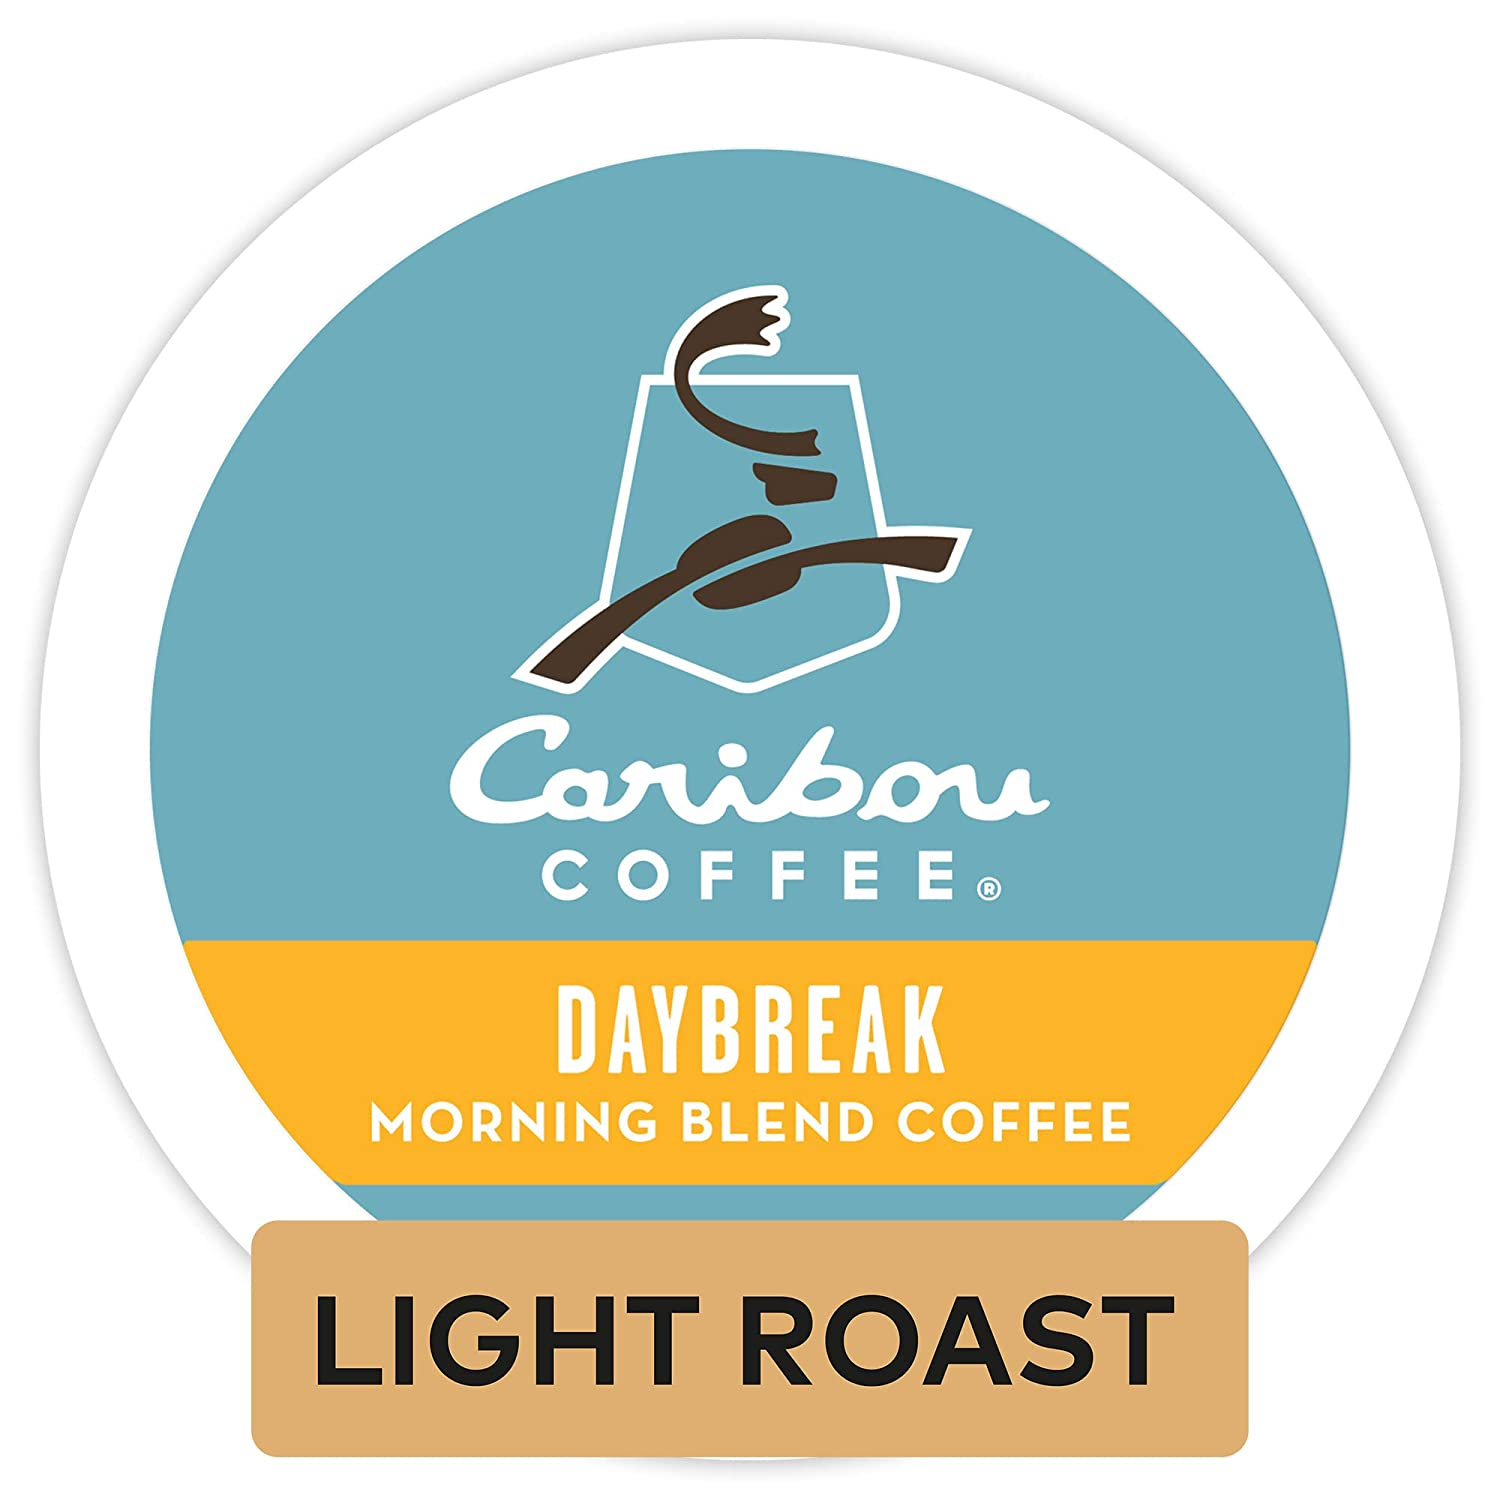 Caribou Coffee Daybreak Morning Blend, Single Serve Coffee K-Cup Pod, Light Roast, 72